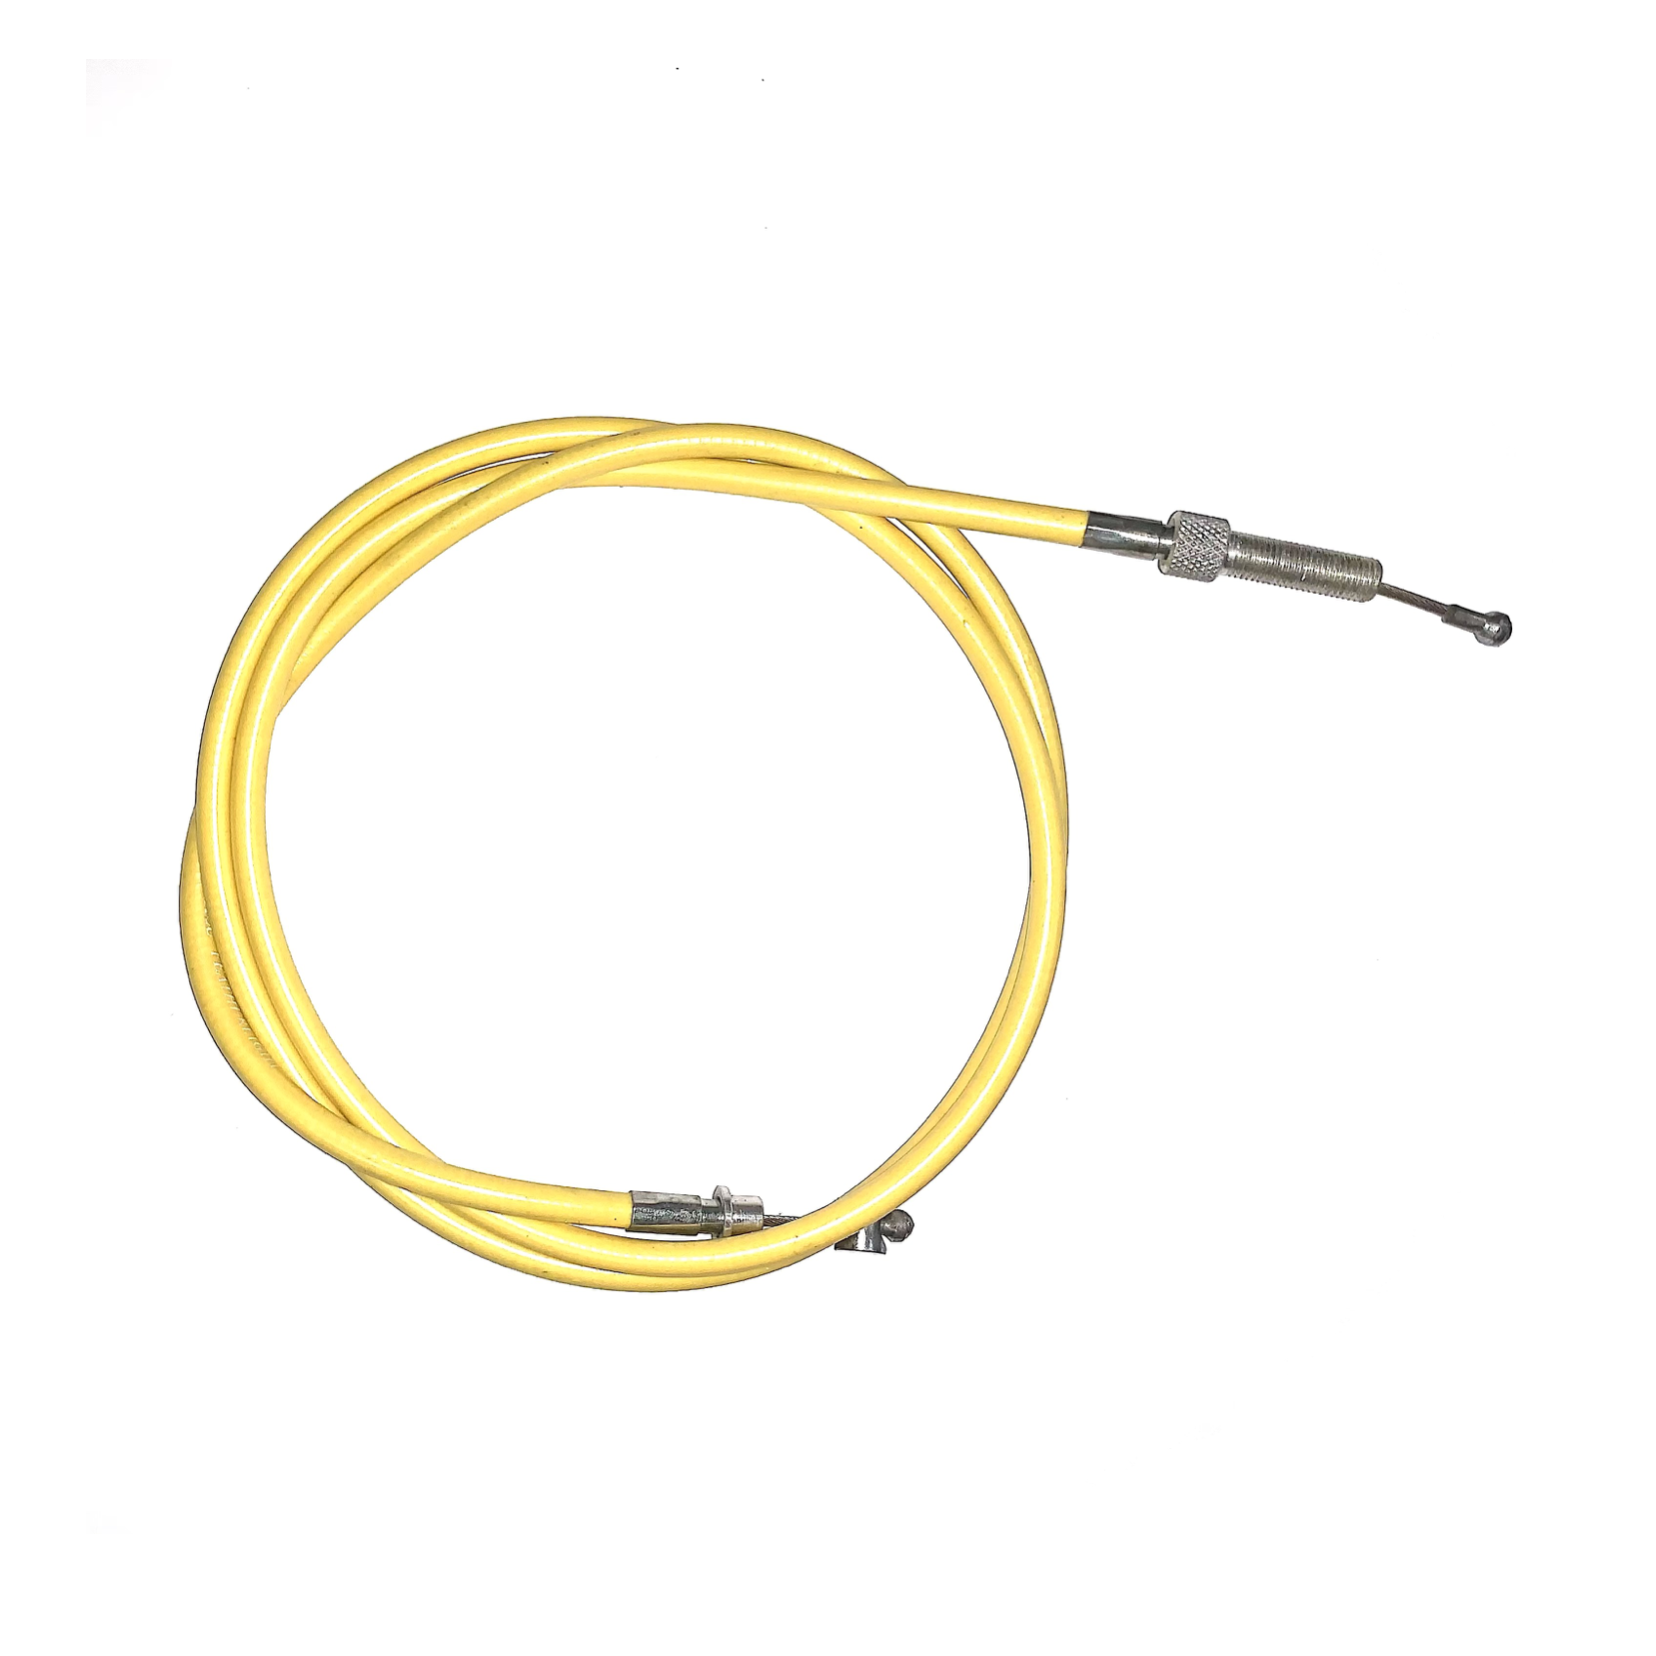 VENHILL FEATHERLIGHT CLUTCH CABLE FOR OLD ENGLISH DOHERTY LEVER - YELLOW